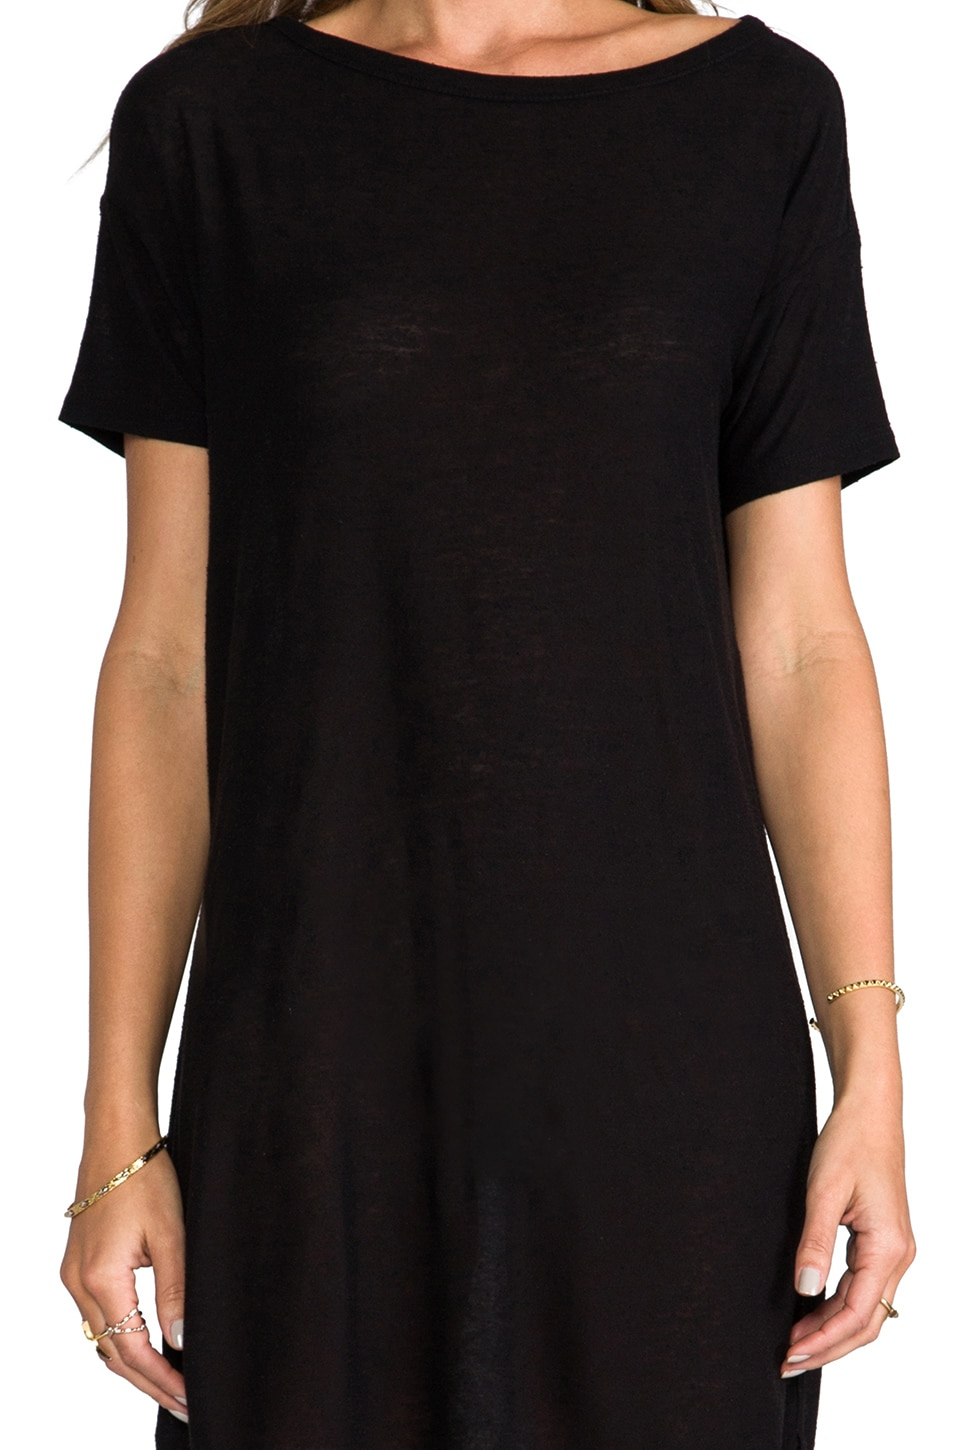 T by Alexander Wang Classic Pilly Boatneck Dress in Black